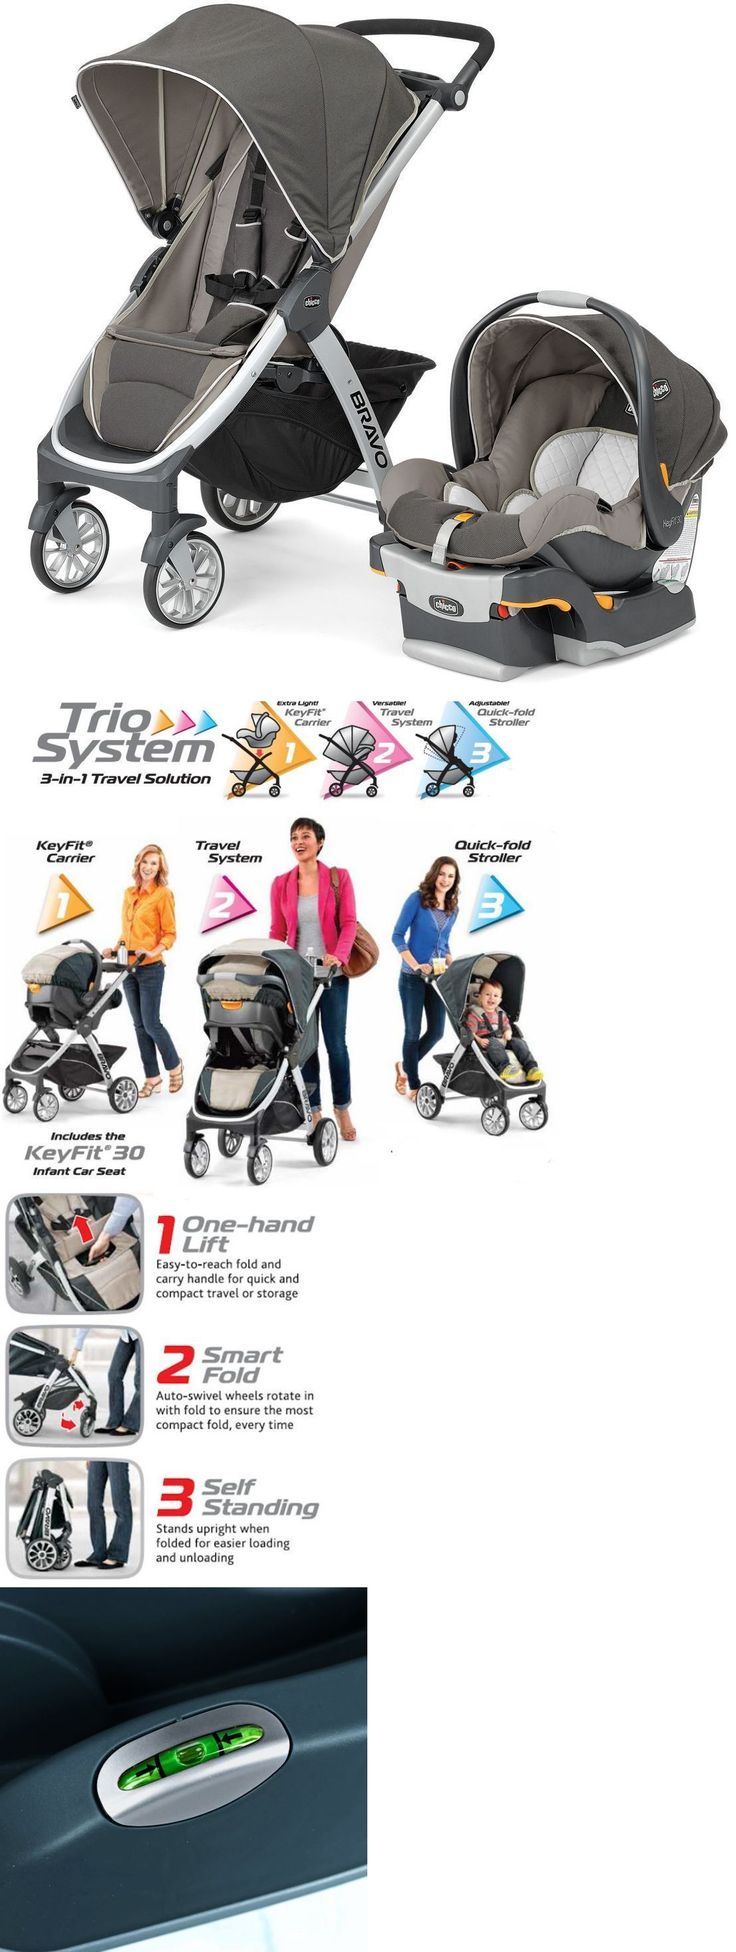 17 Best Ideas About Baby Travel System On Pinterest Baby